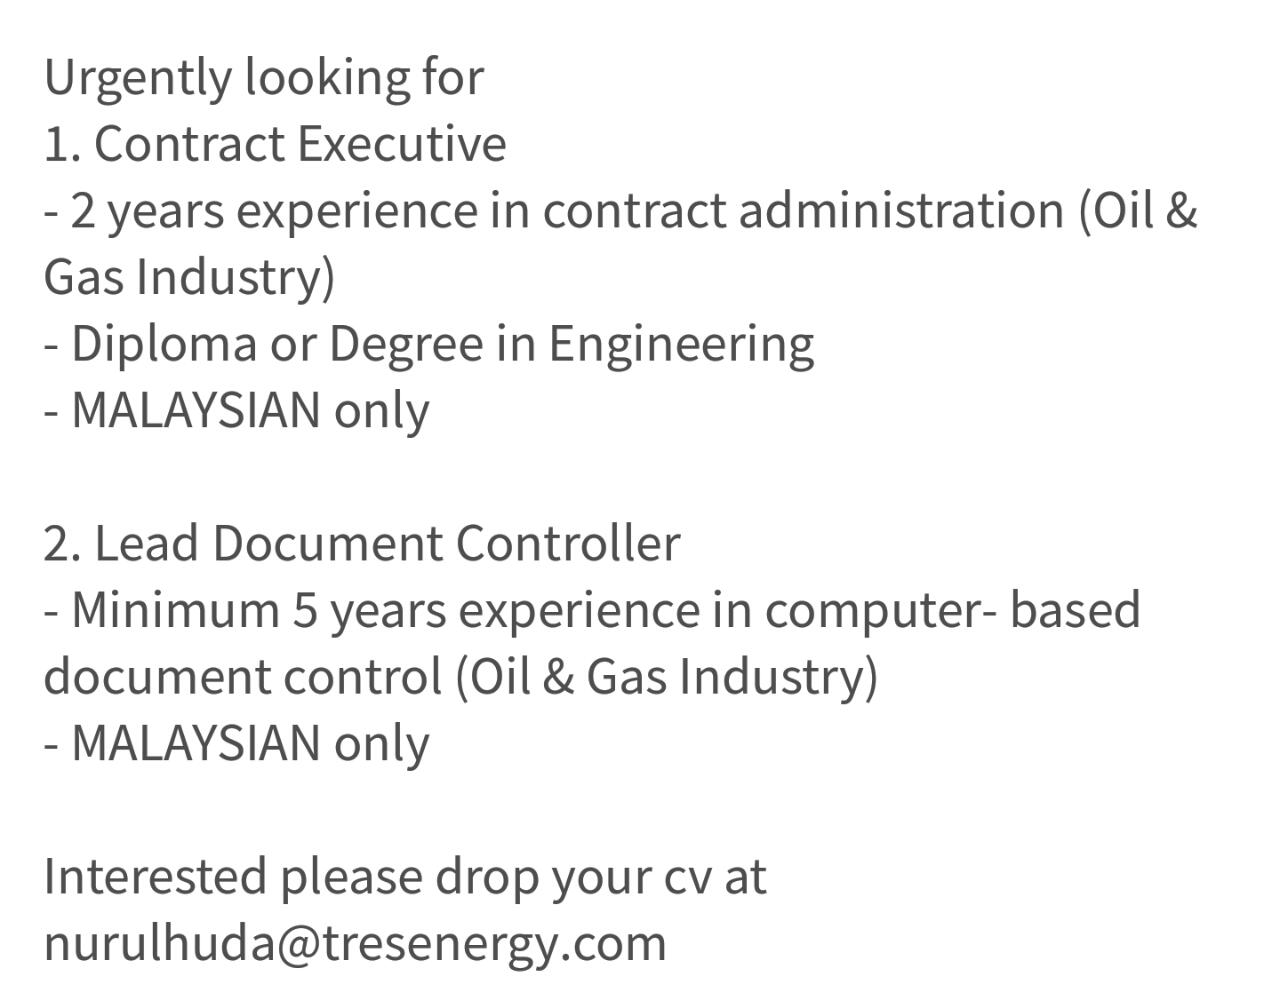 contract executive lead document controller malaysia - Halliburton Field Engineer Sample Resume